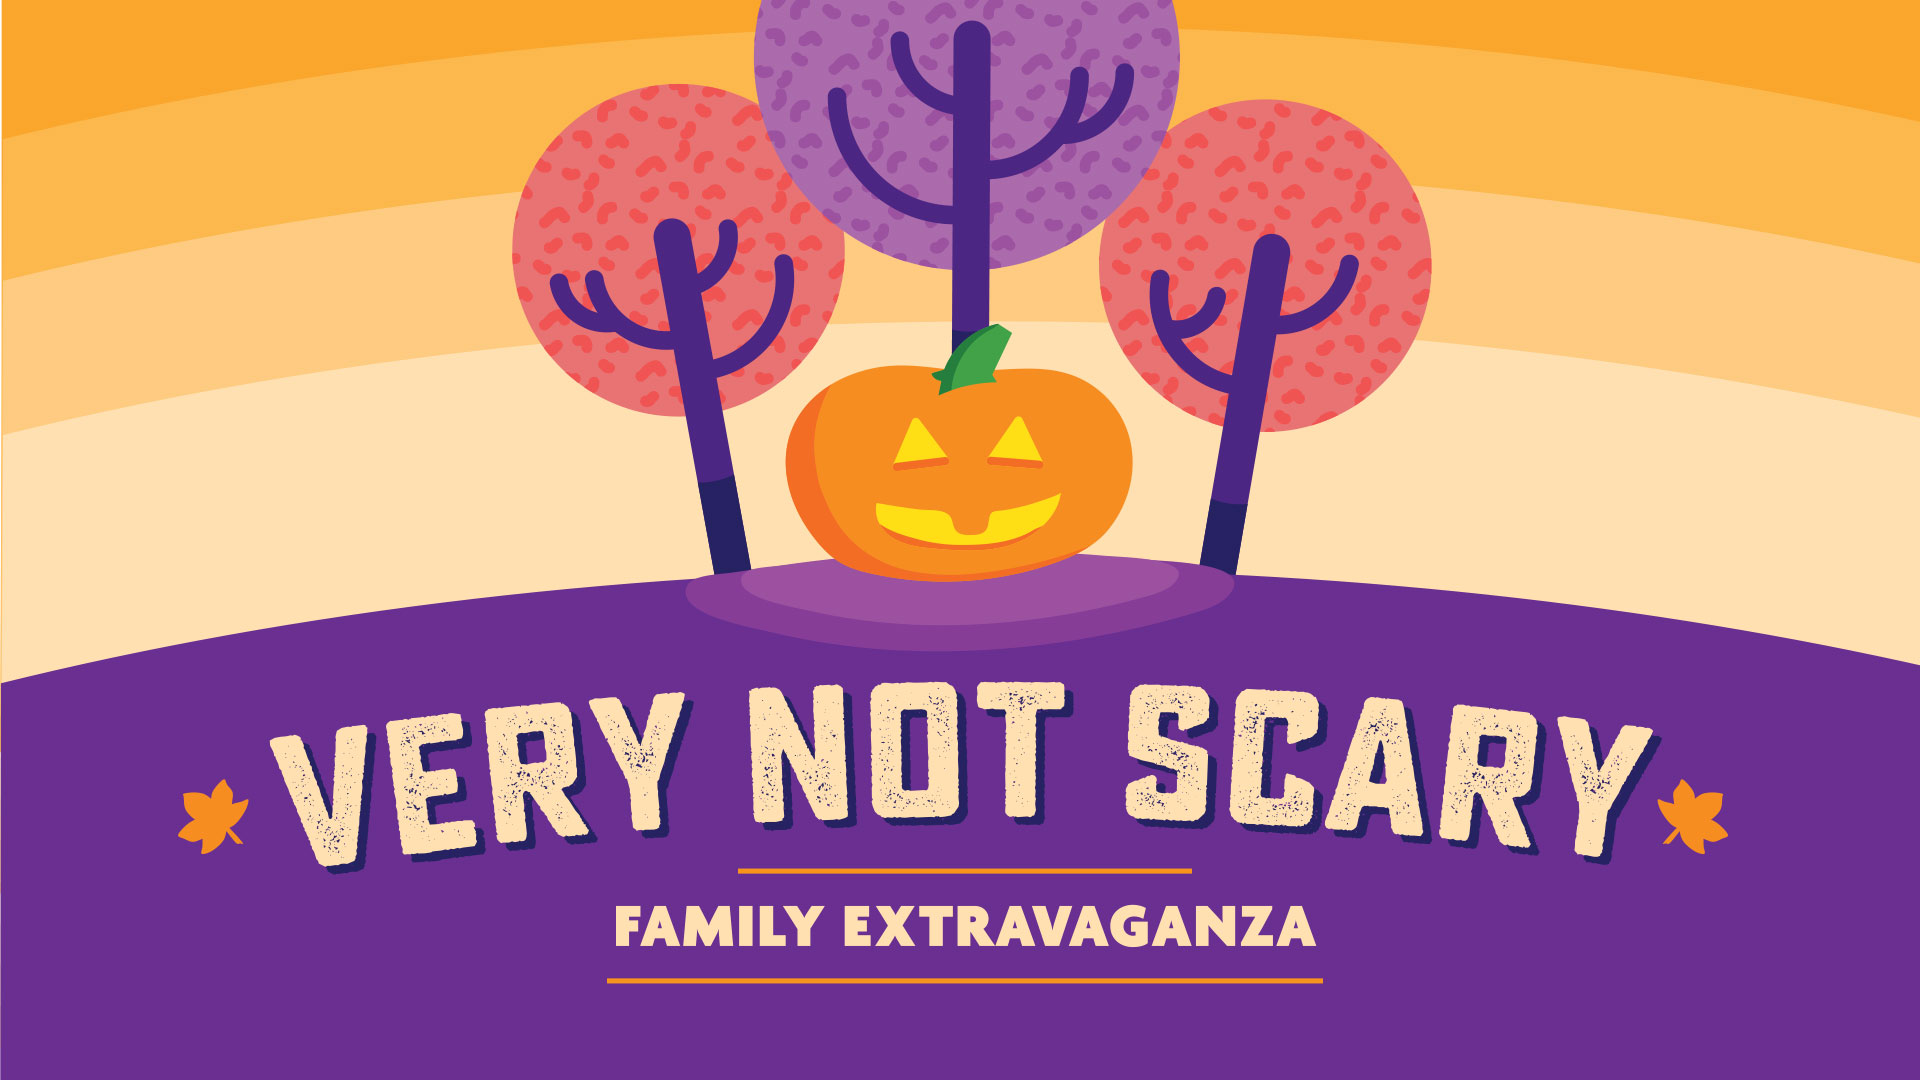 Very Not Scary Event